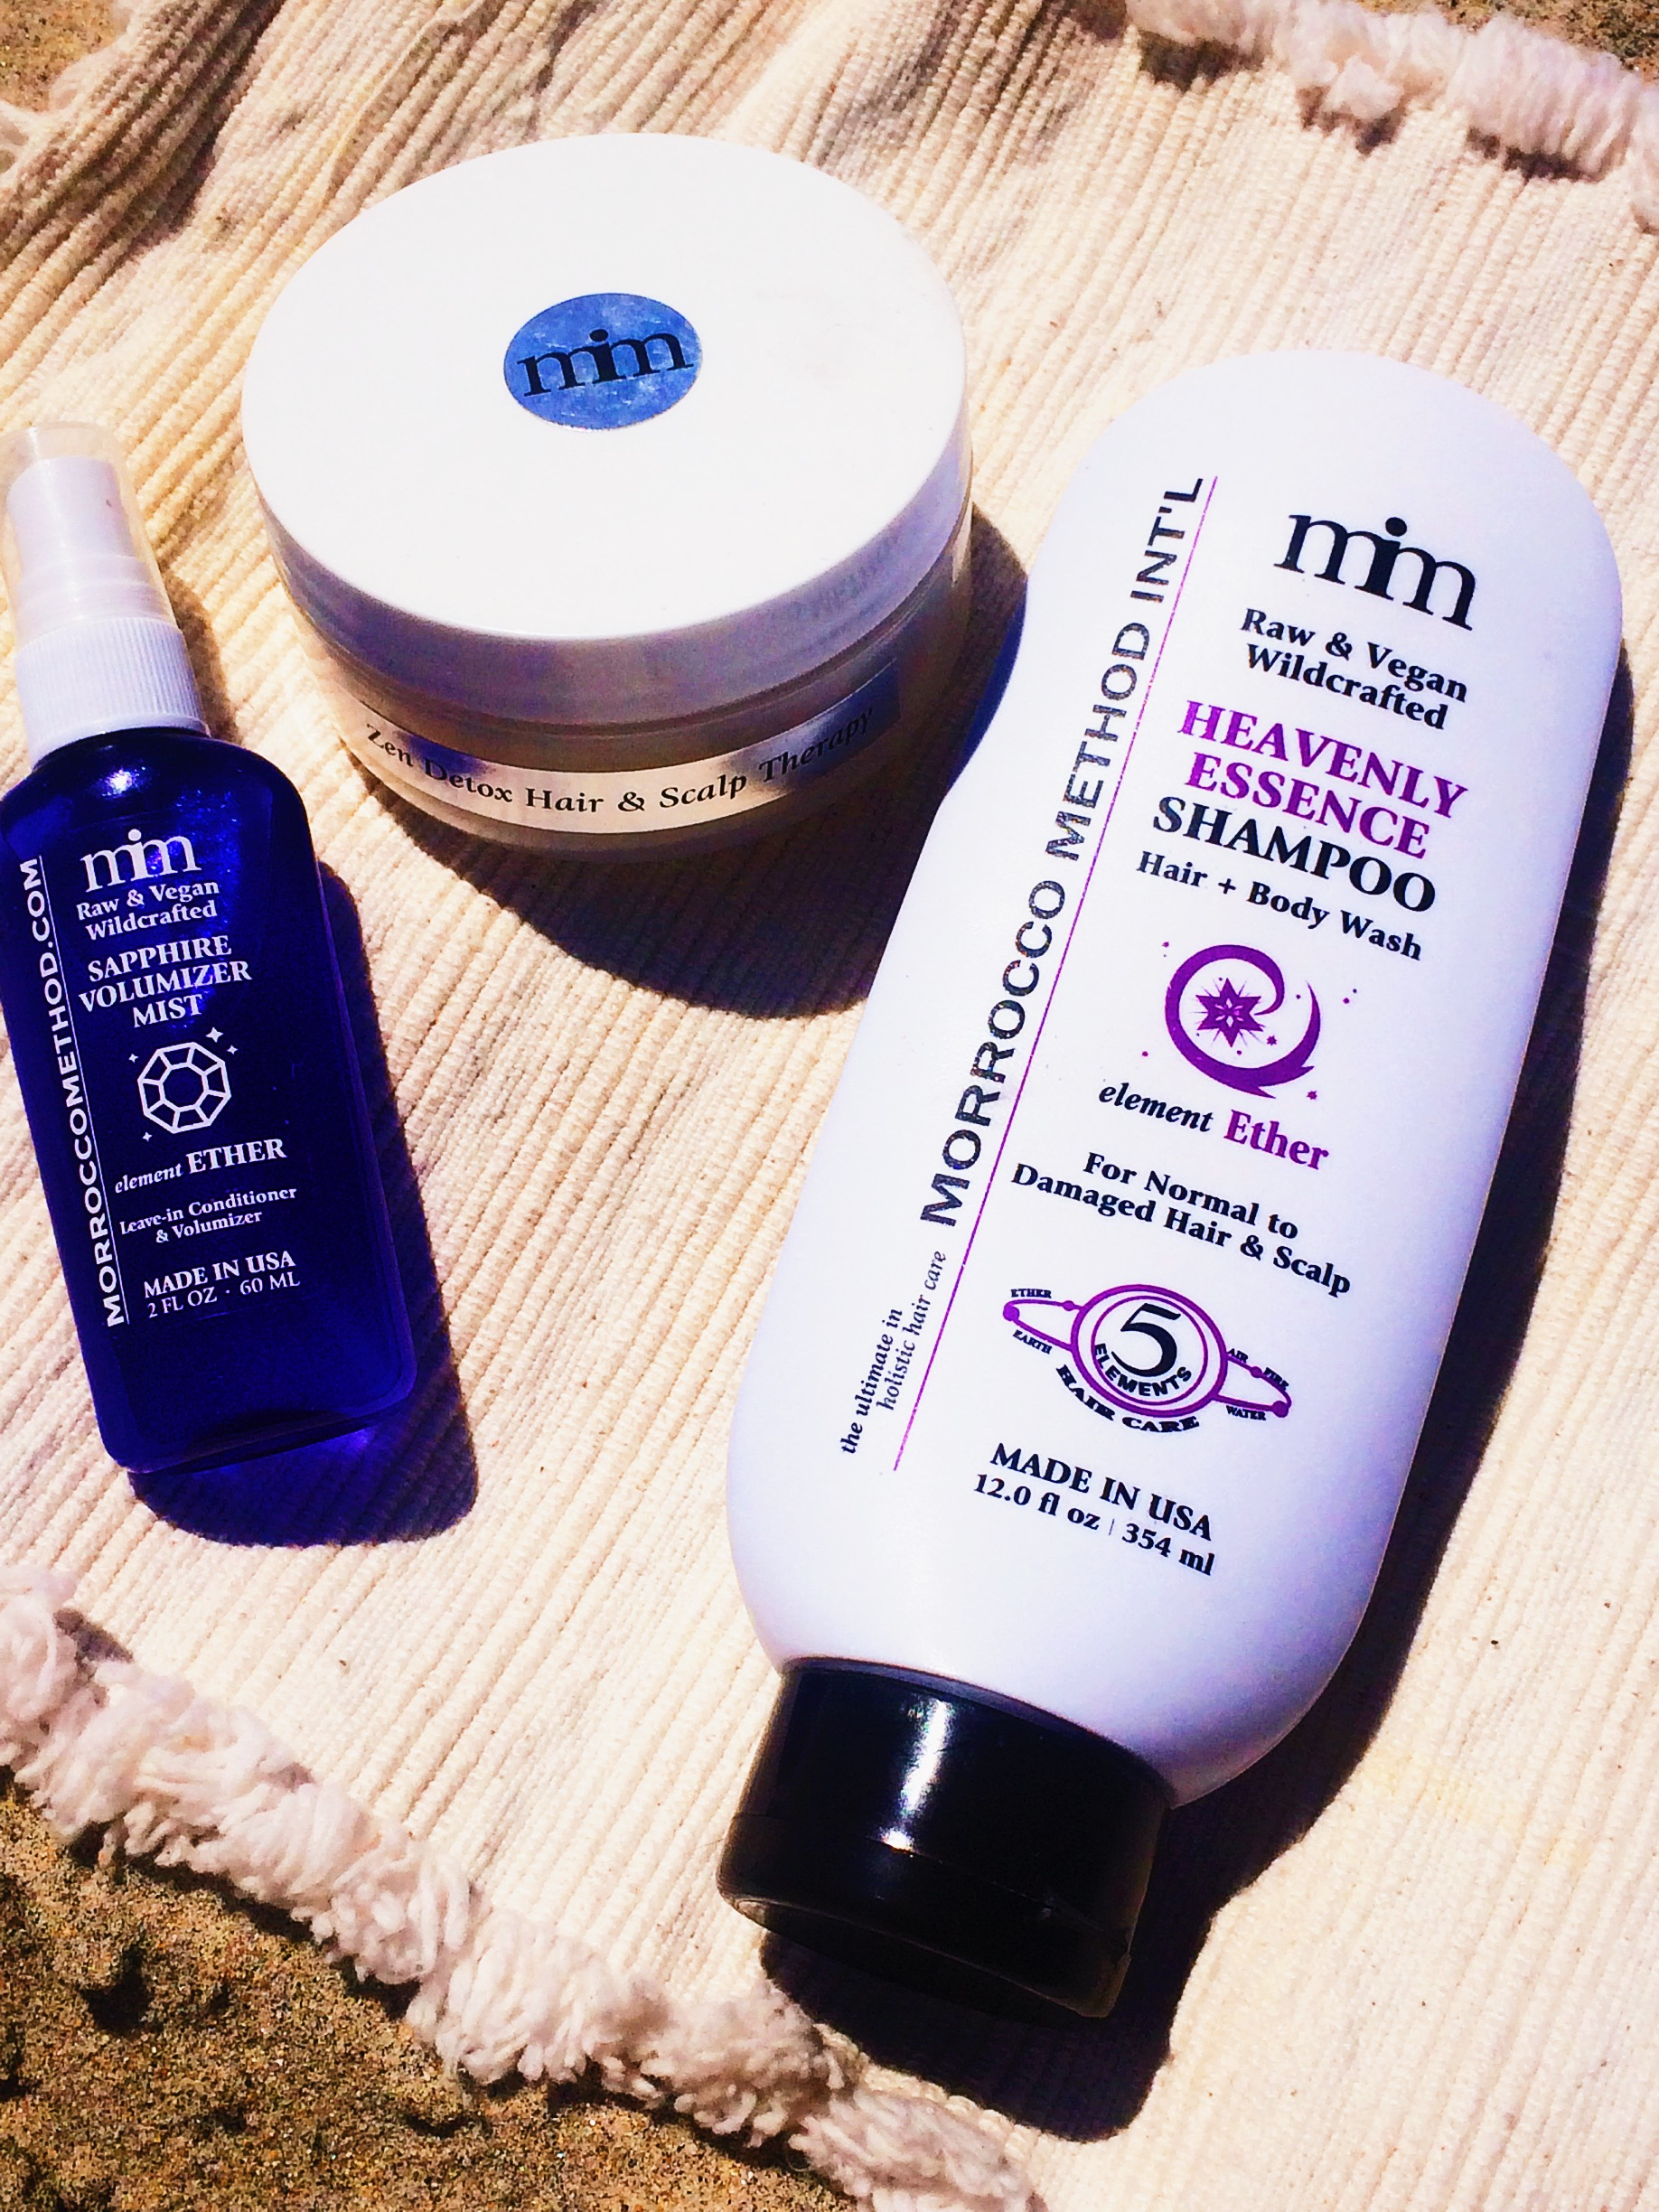 The Morrocco Method Haircare Ritual